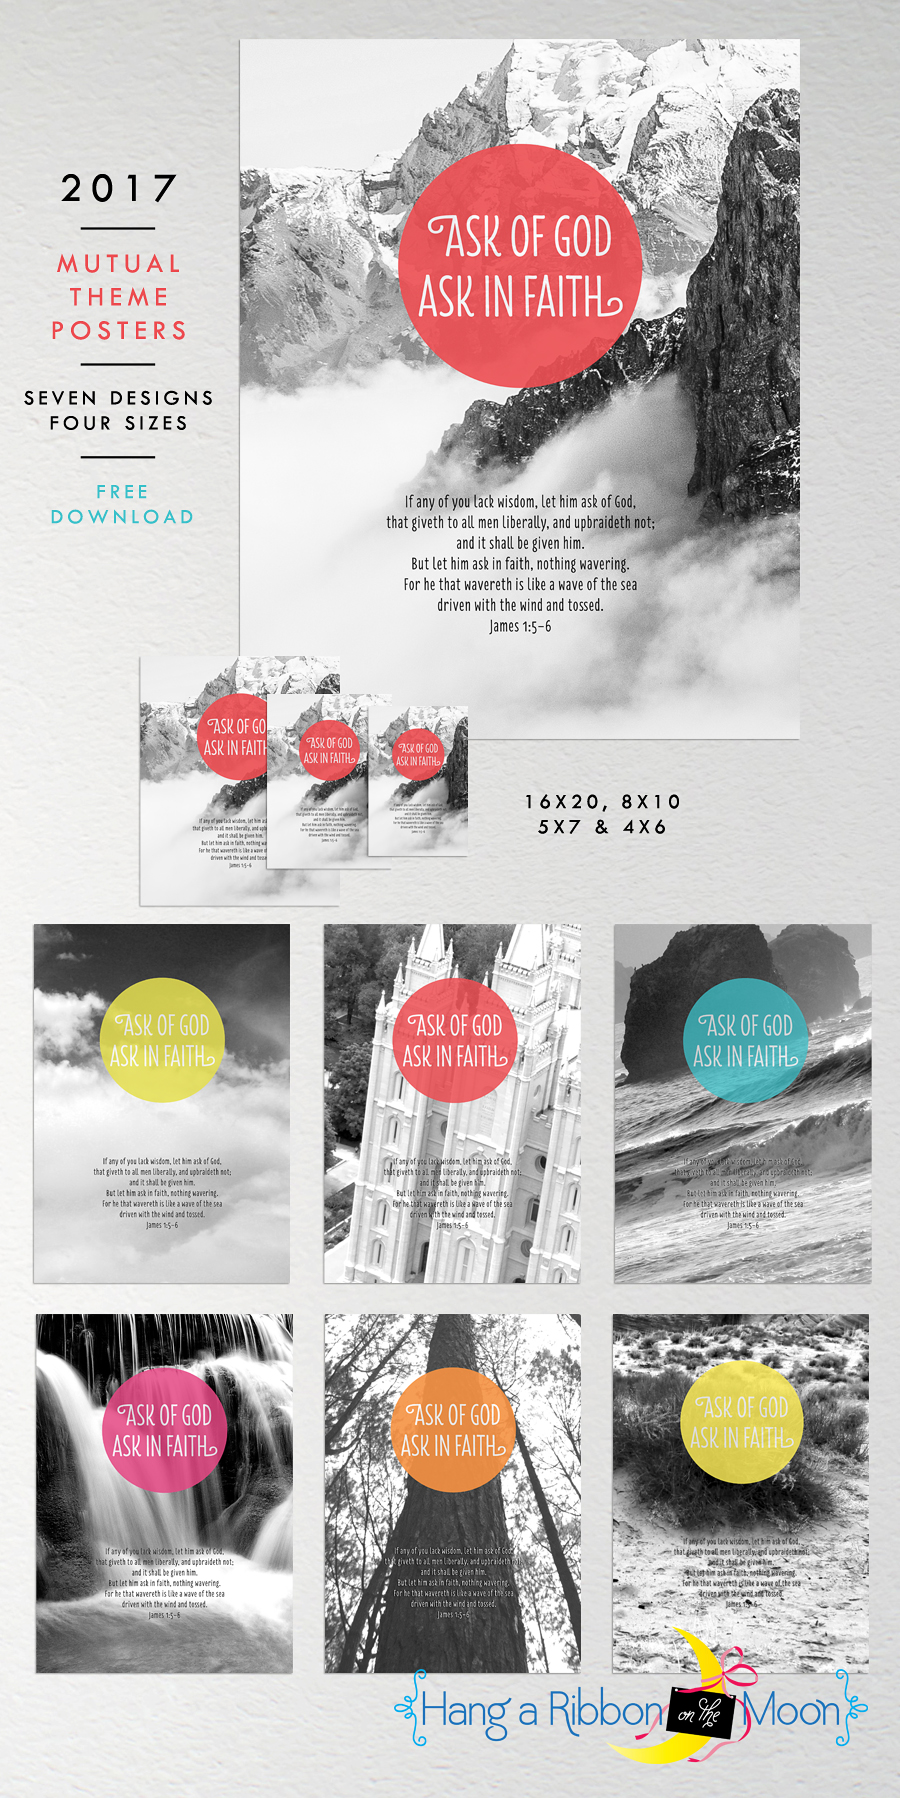 2017 Mutual Theme Photo Posters: FREE download! Seven designs, four sizes. Great for YW & YM!